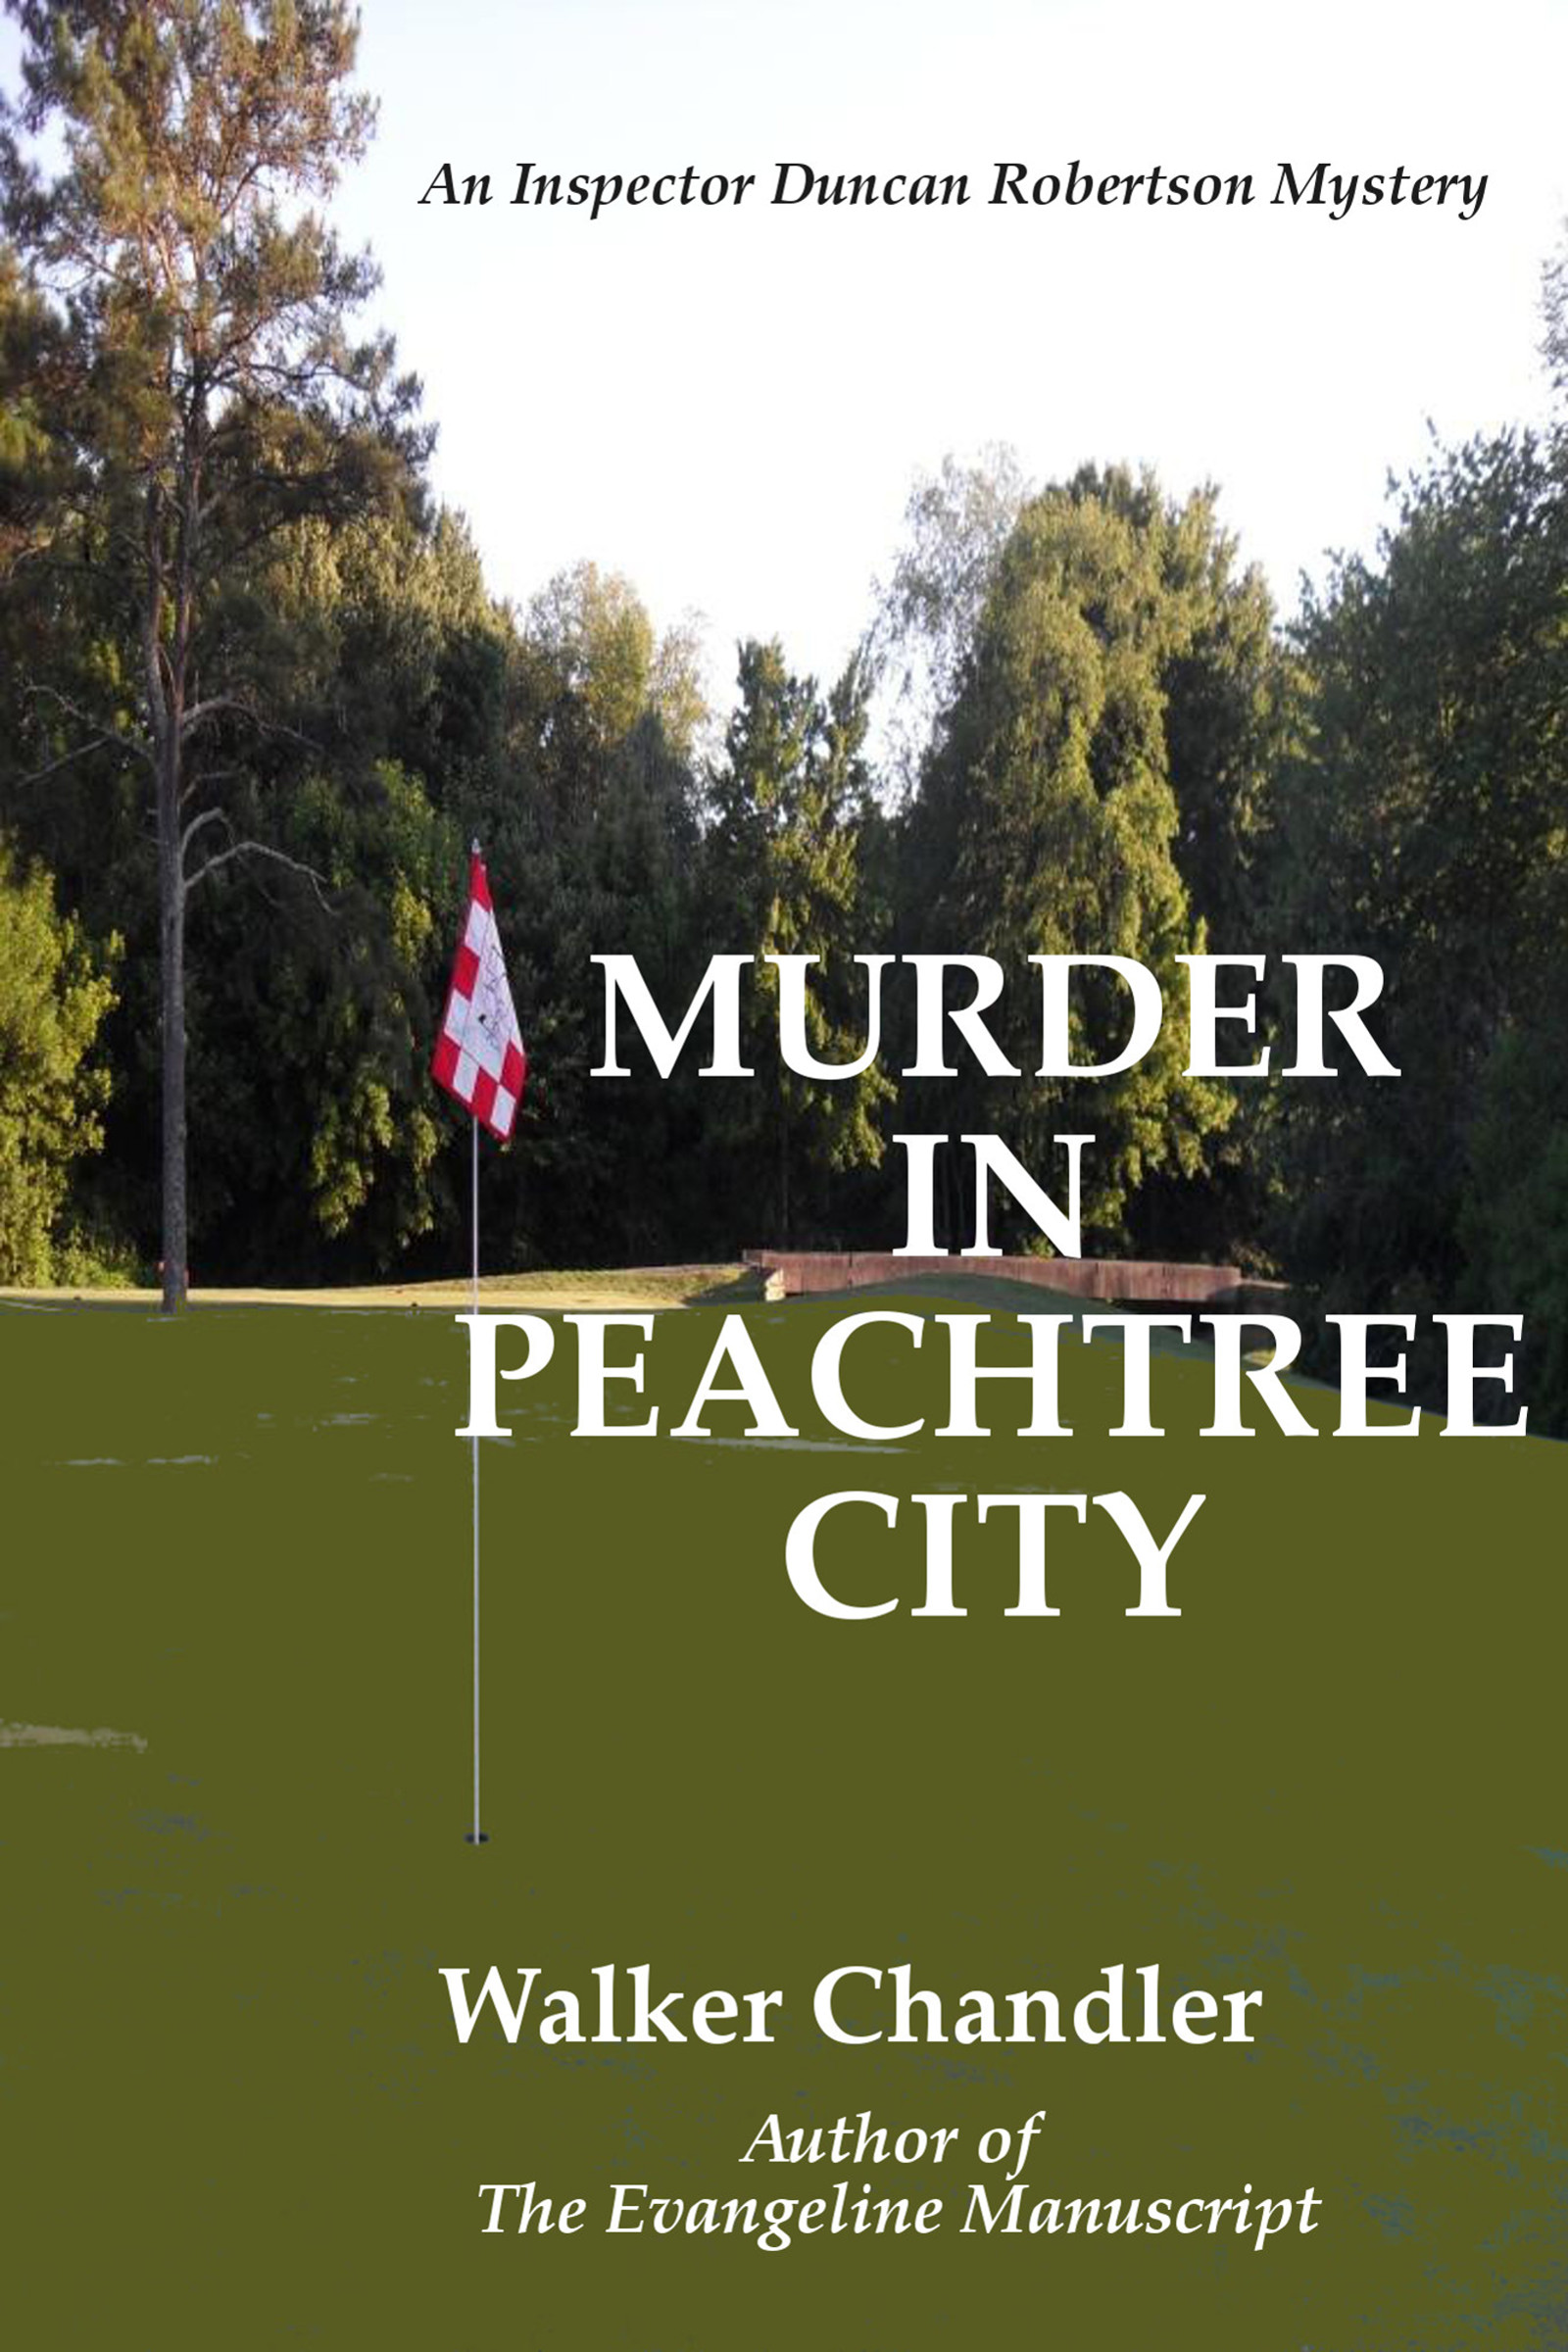 Murder in Peachtree City